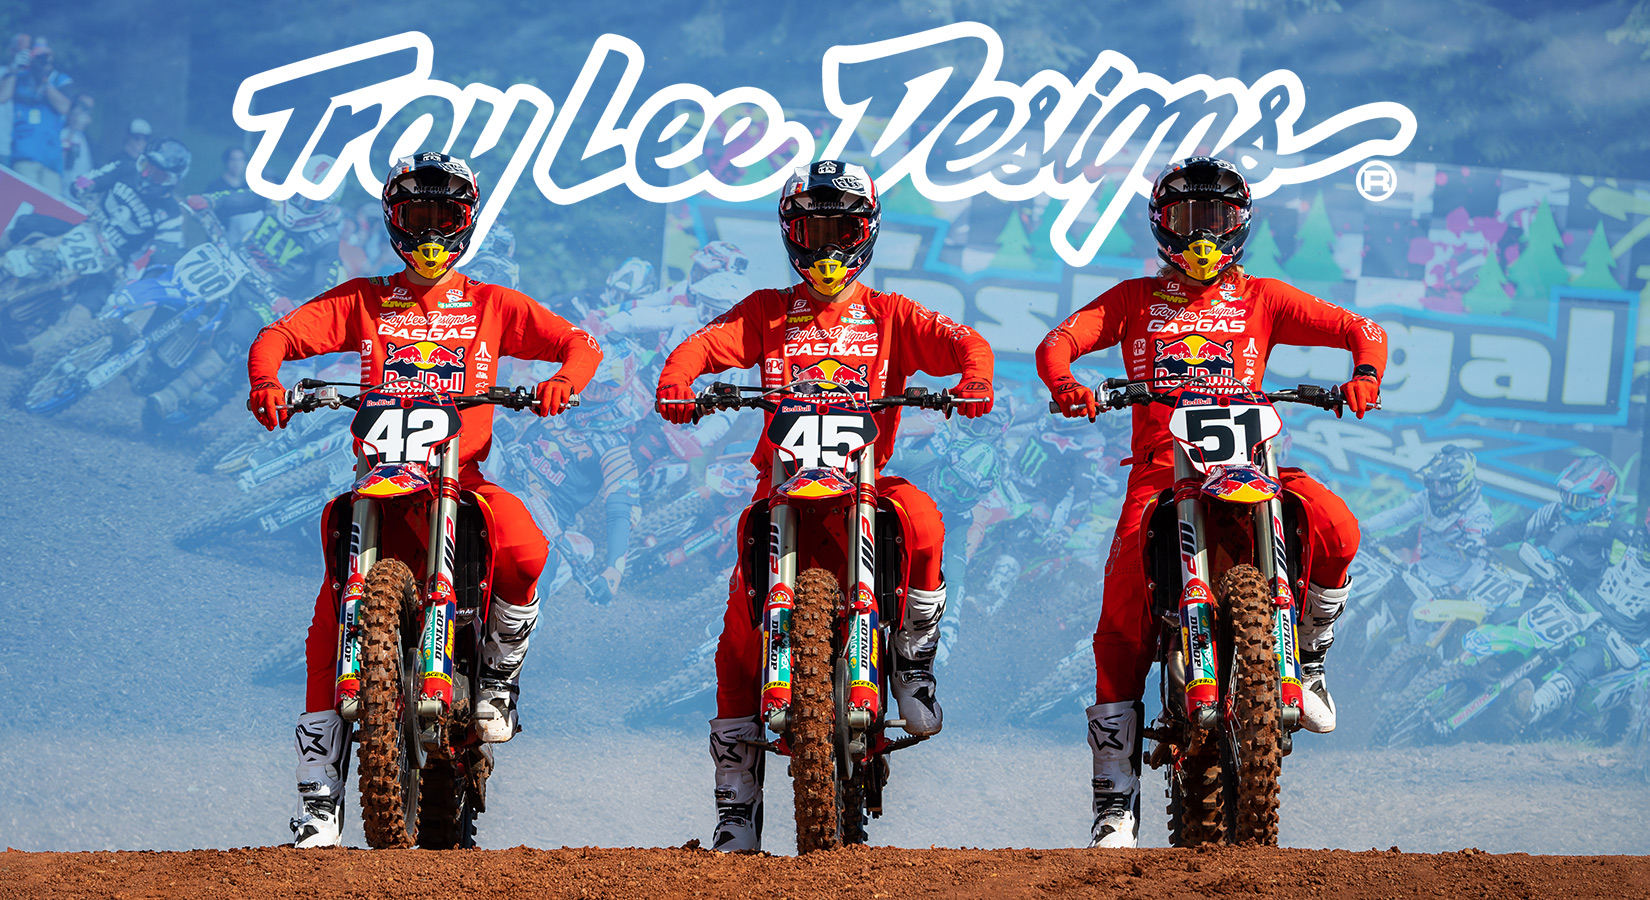 TROY LEE DESIGNS WASHOUGAL NATIONAL SWEEPSTAKES